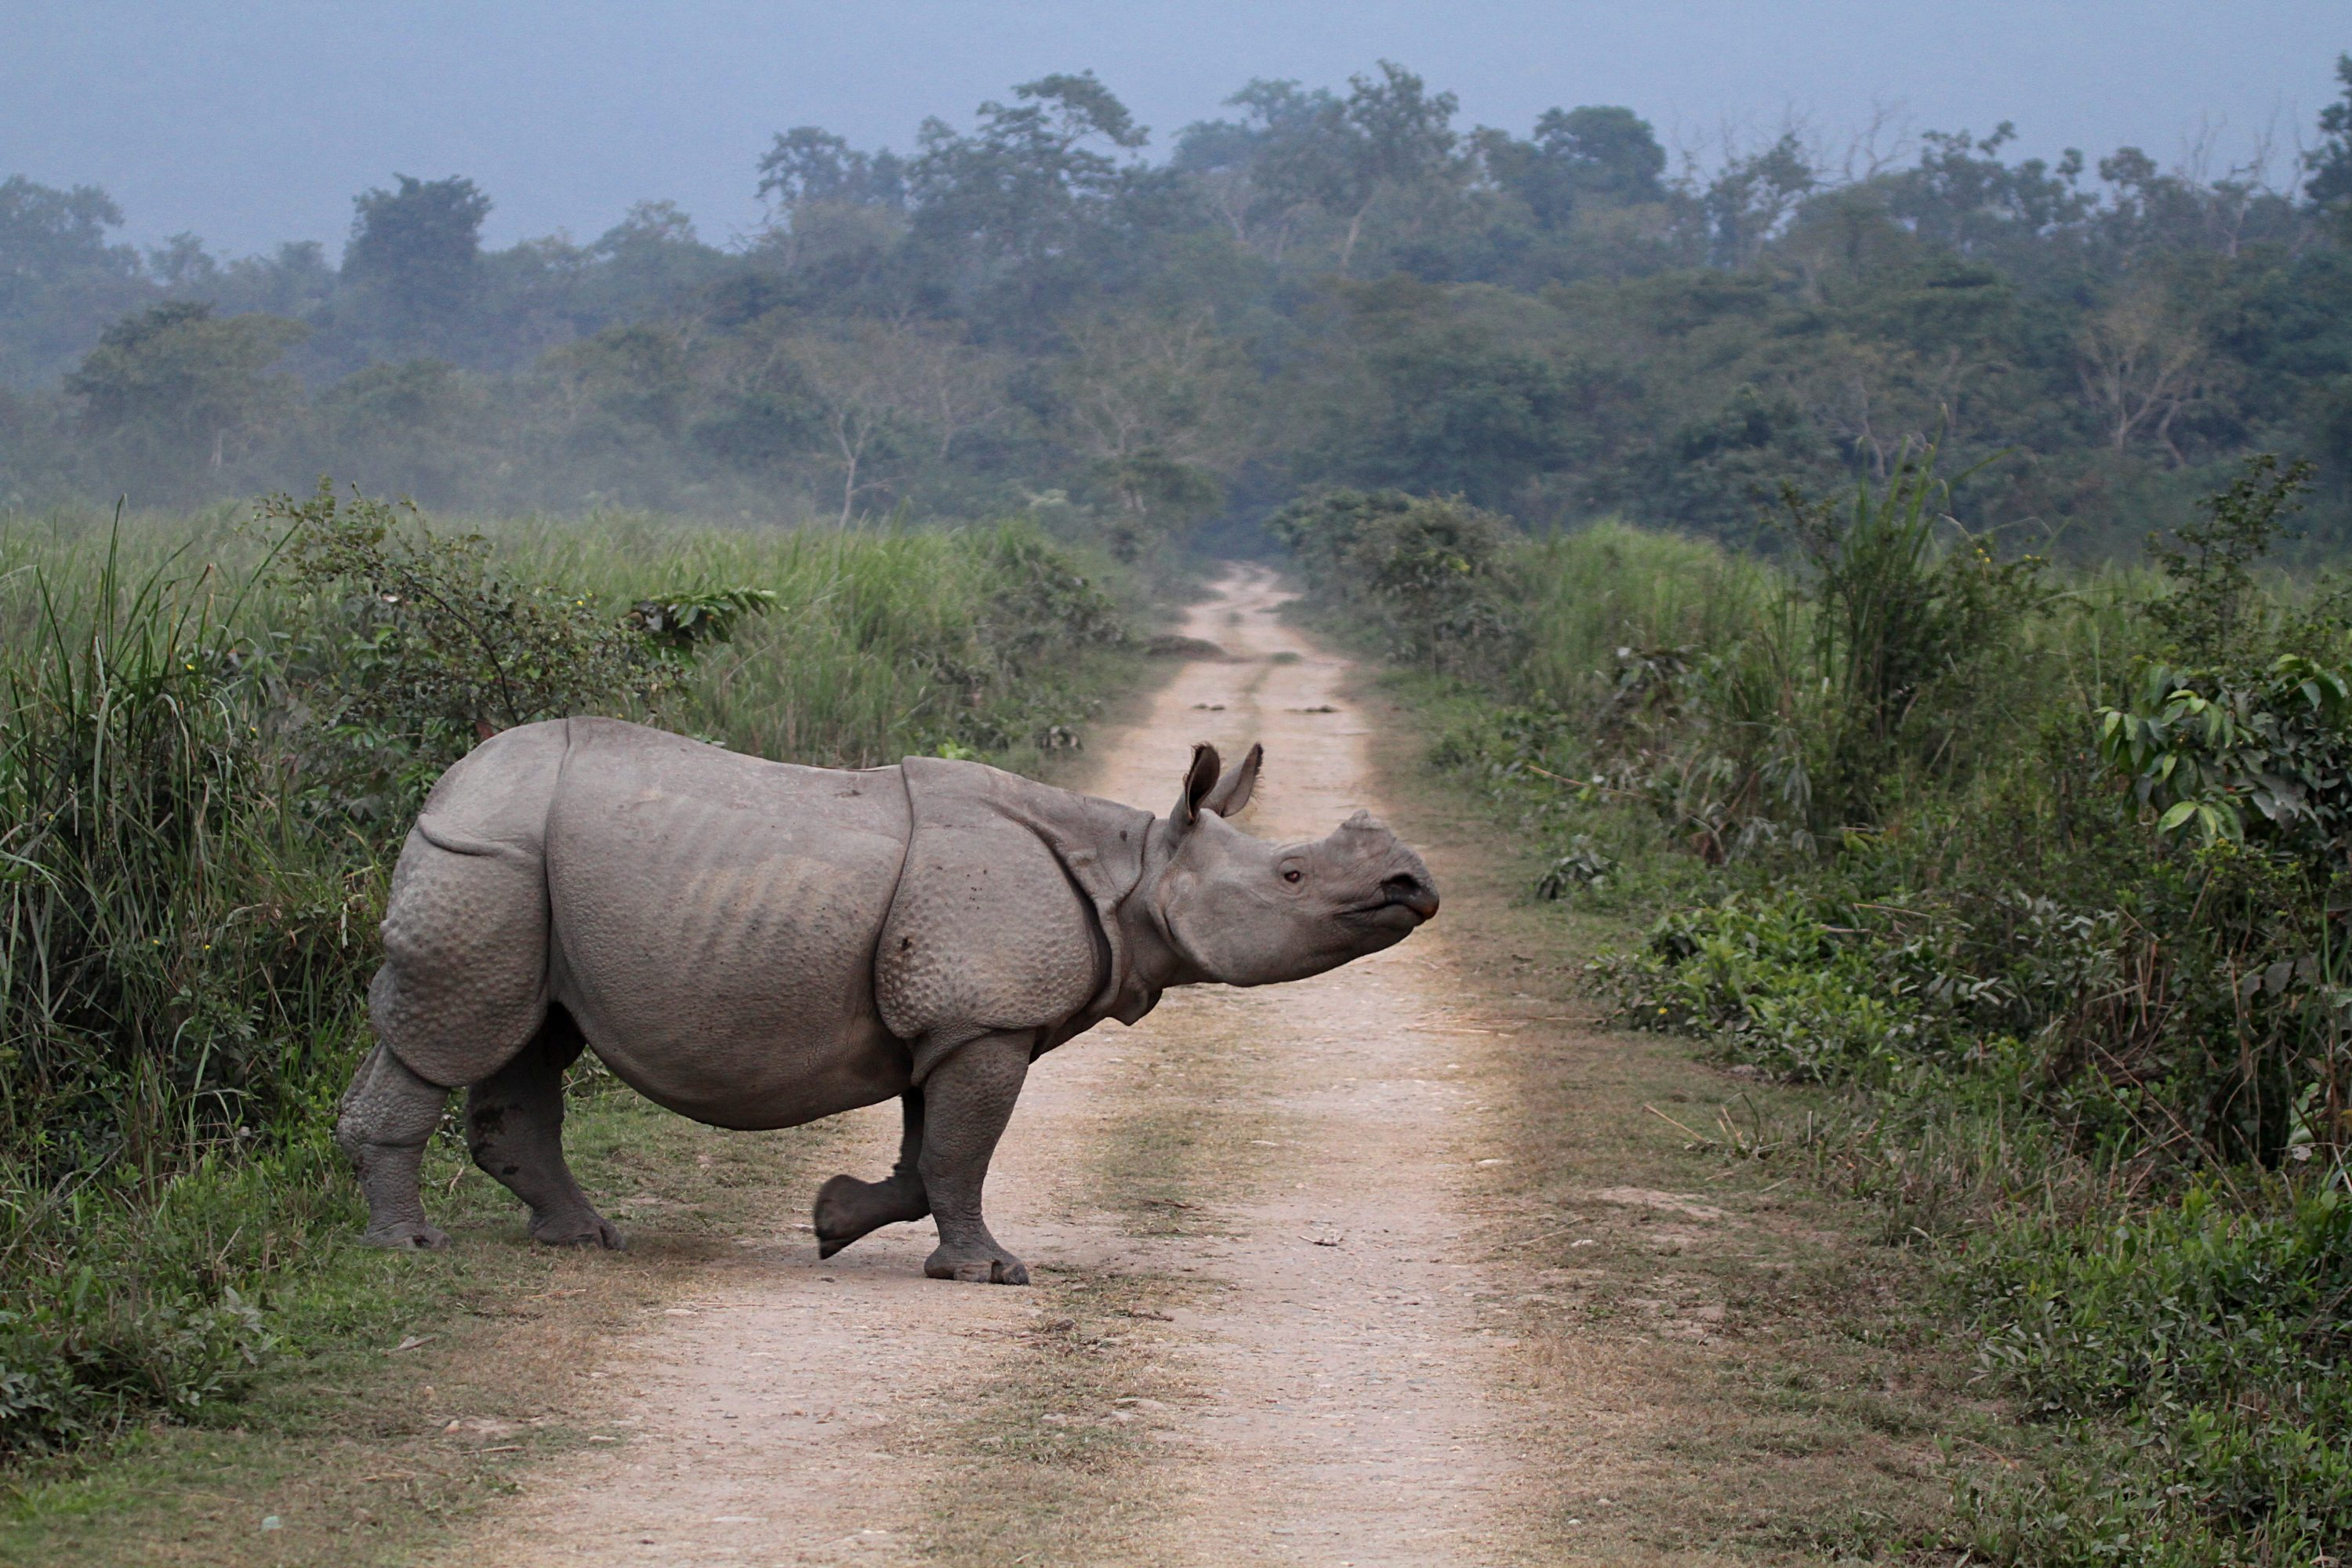 A Great One-horned Indian Rhinoceros crosses the road at Kaziranga National Park, Assam, India. (Arunsundar/Getty Images)